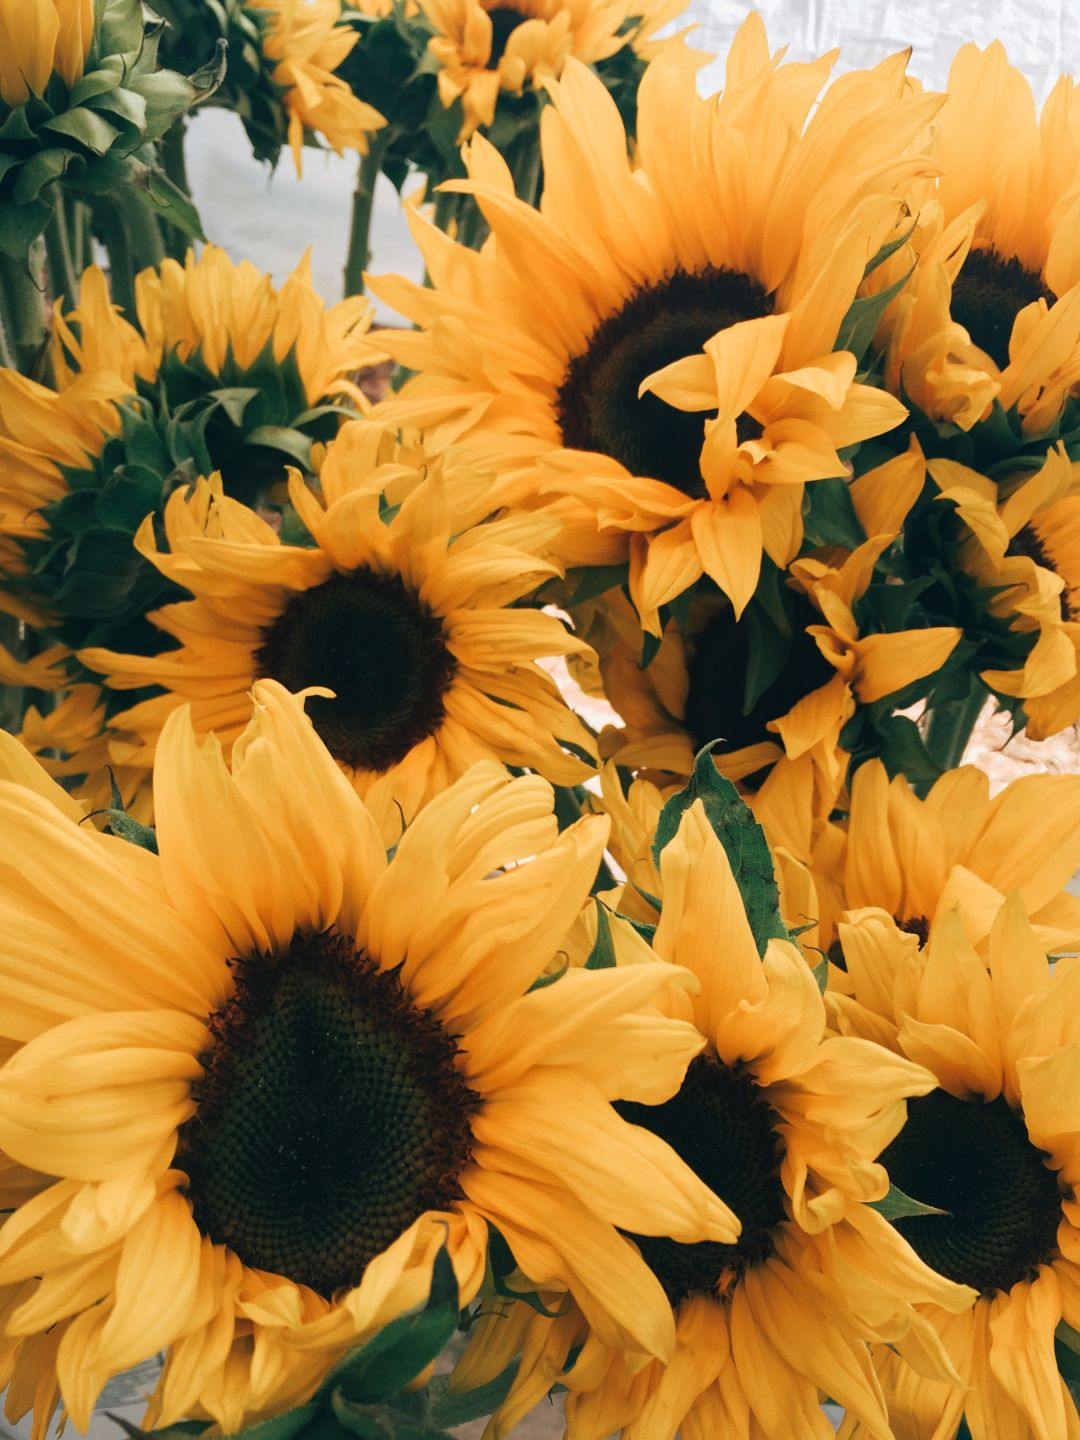 50 Yellow Aesthetic Sunflowers Hd Wallpapers Desktop Background Android Iphone 1080p 4k 3024x4032 2020